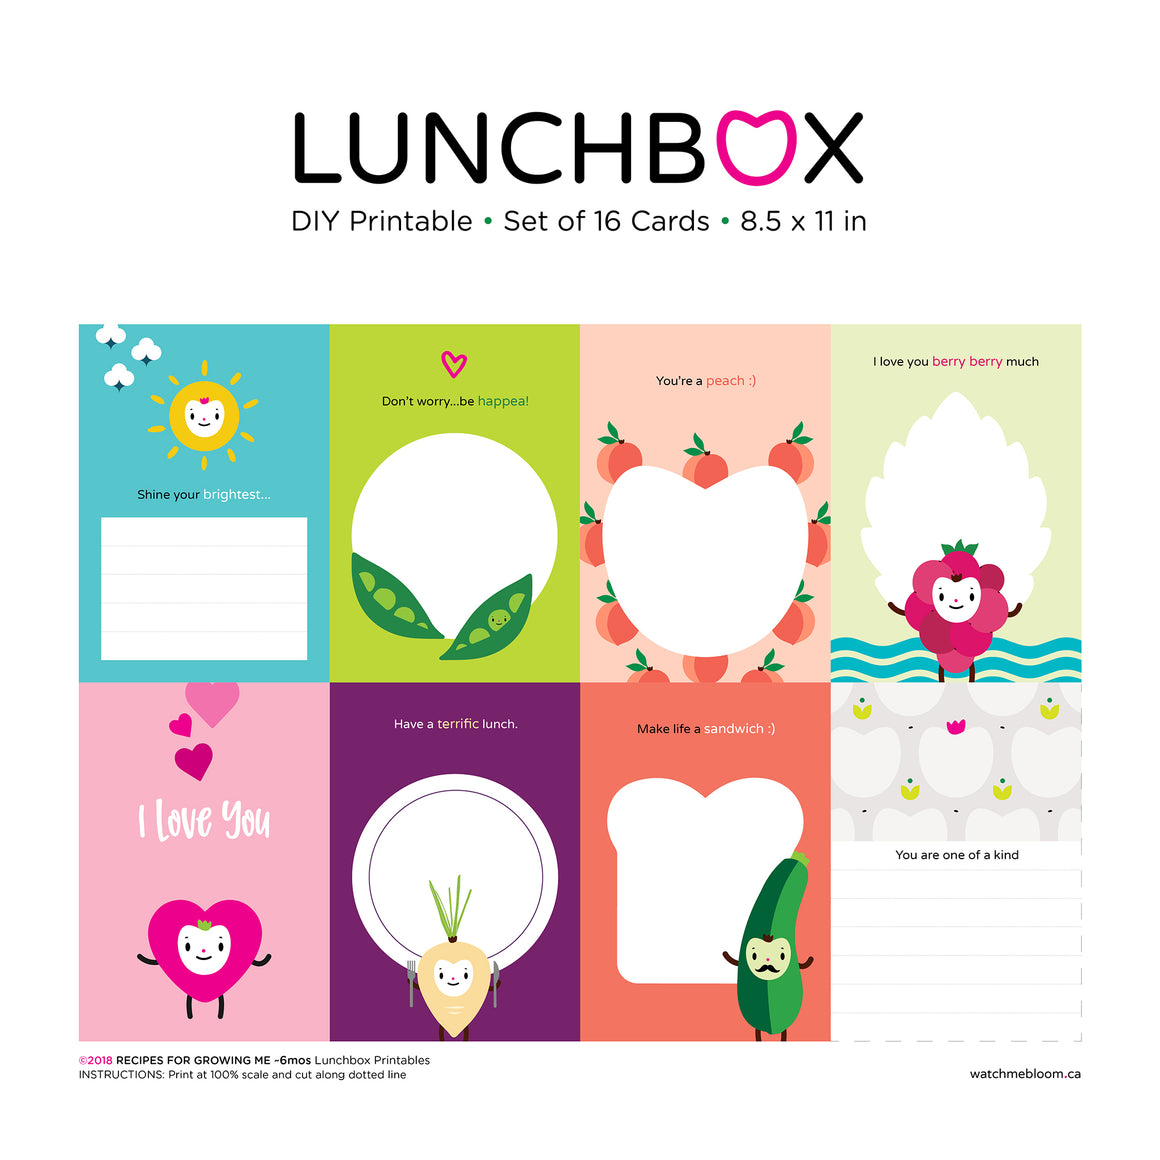 Print your own lunchbox cards, set of 16, multi character, multi colour, assorted encouraging messages, sun, green peas, peaches, raspberry, pink heart i love you, turnip, green zucchini, one of a kind, character illustrations DIY printable, print on 8.5x11 white paper